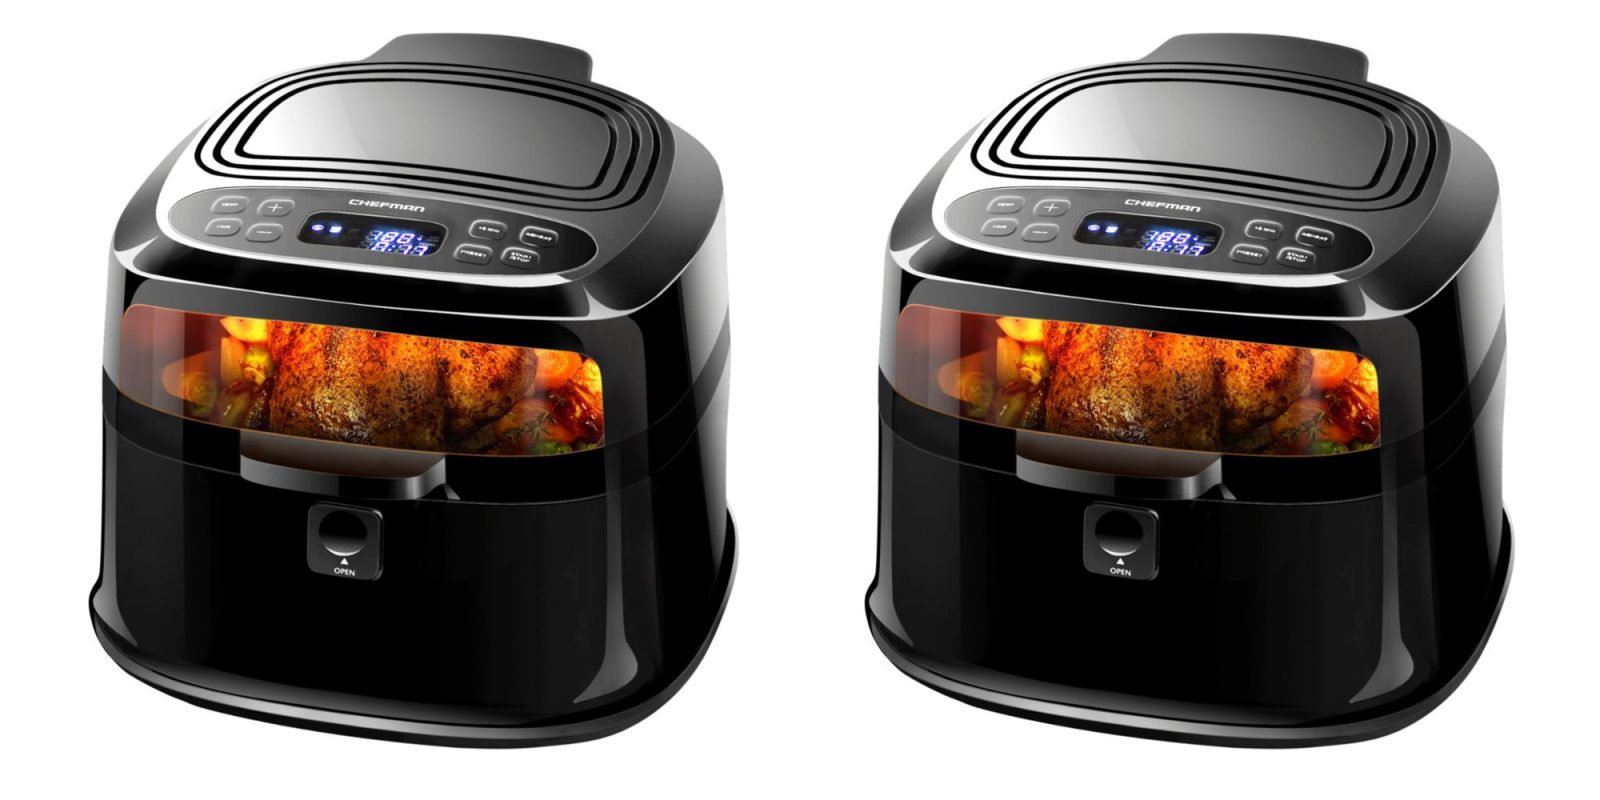 Chefman's big boy Rotisserie Air Fryer now at $70 shipped (Reg. up to $150)